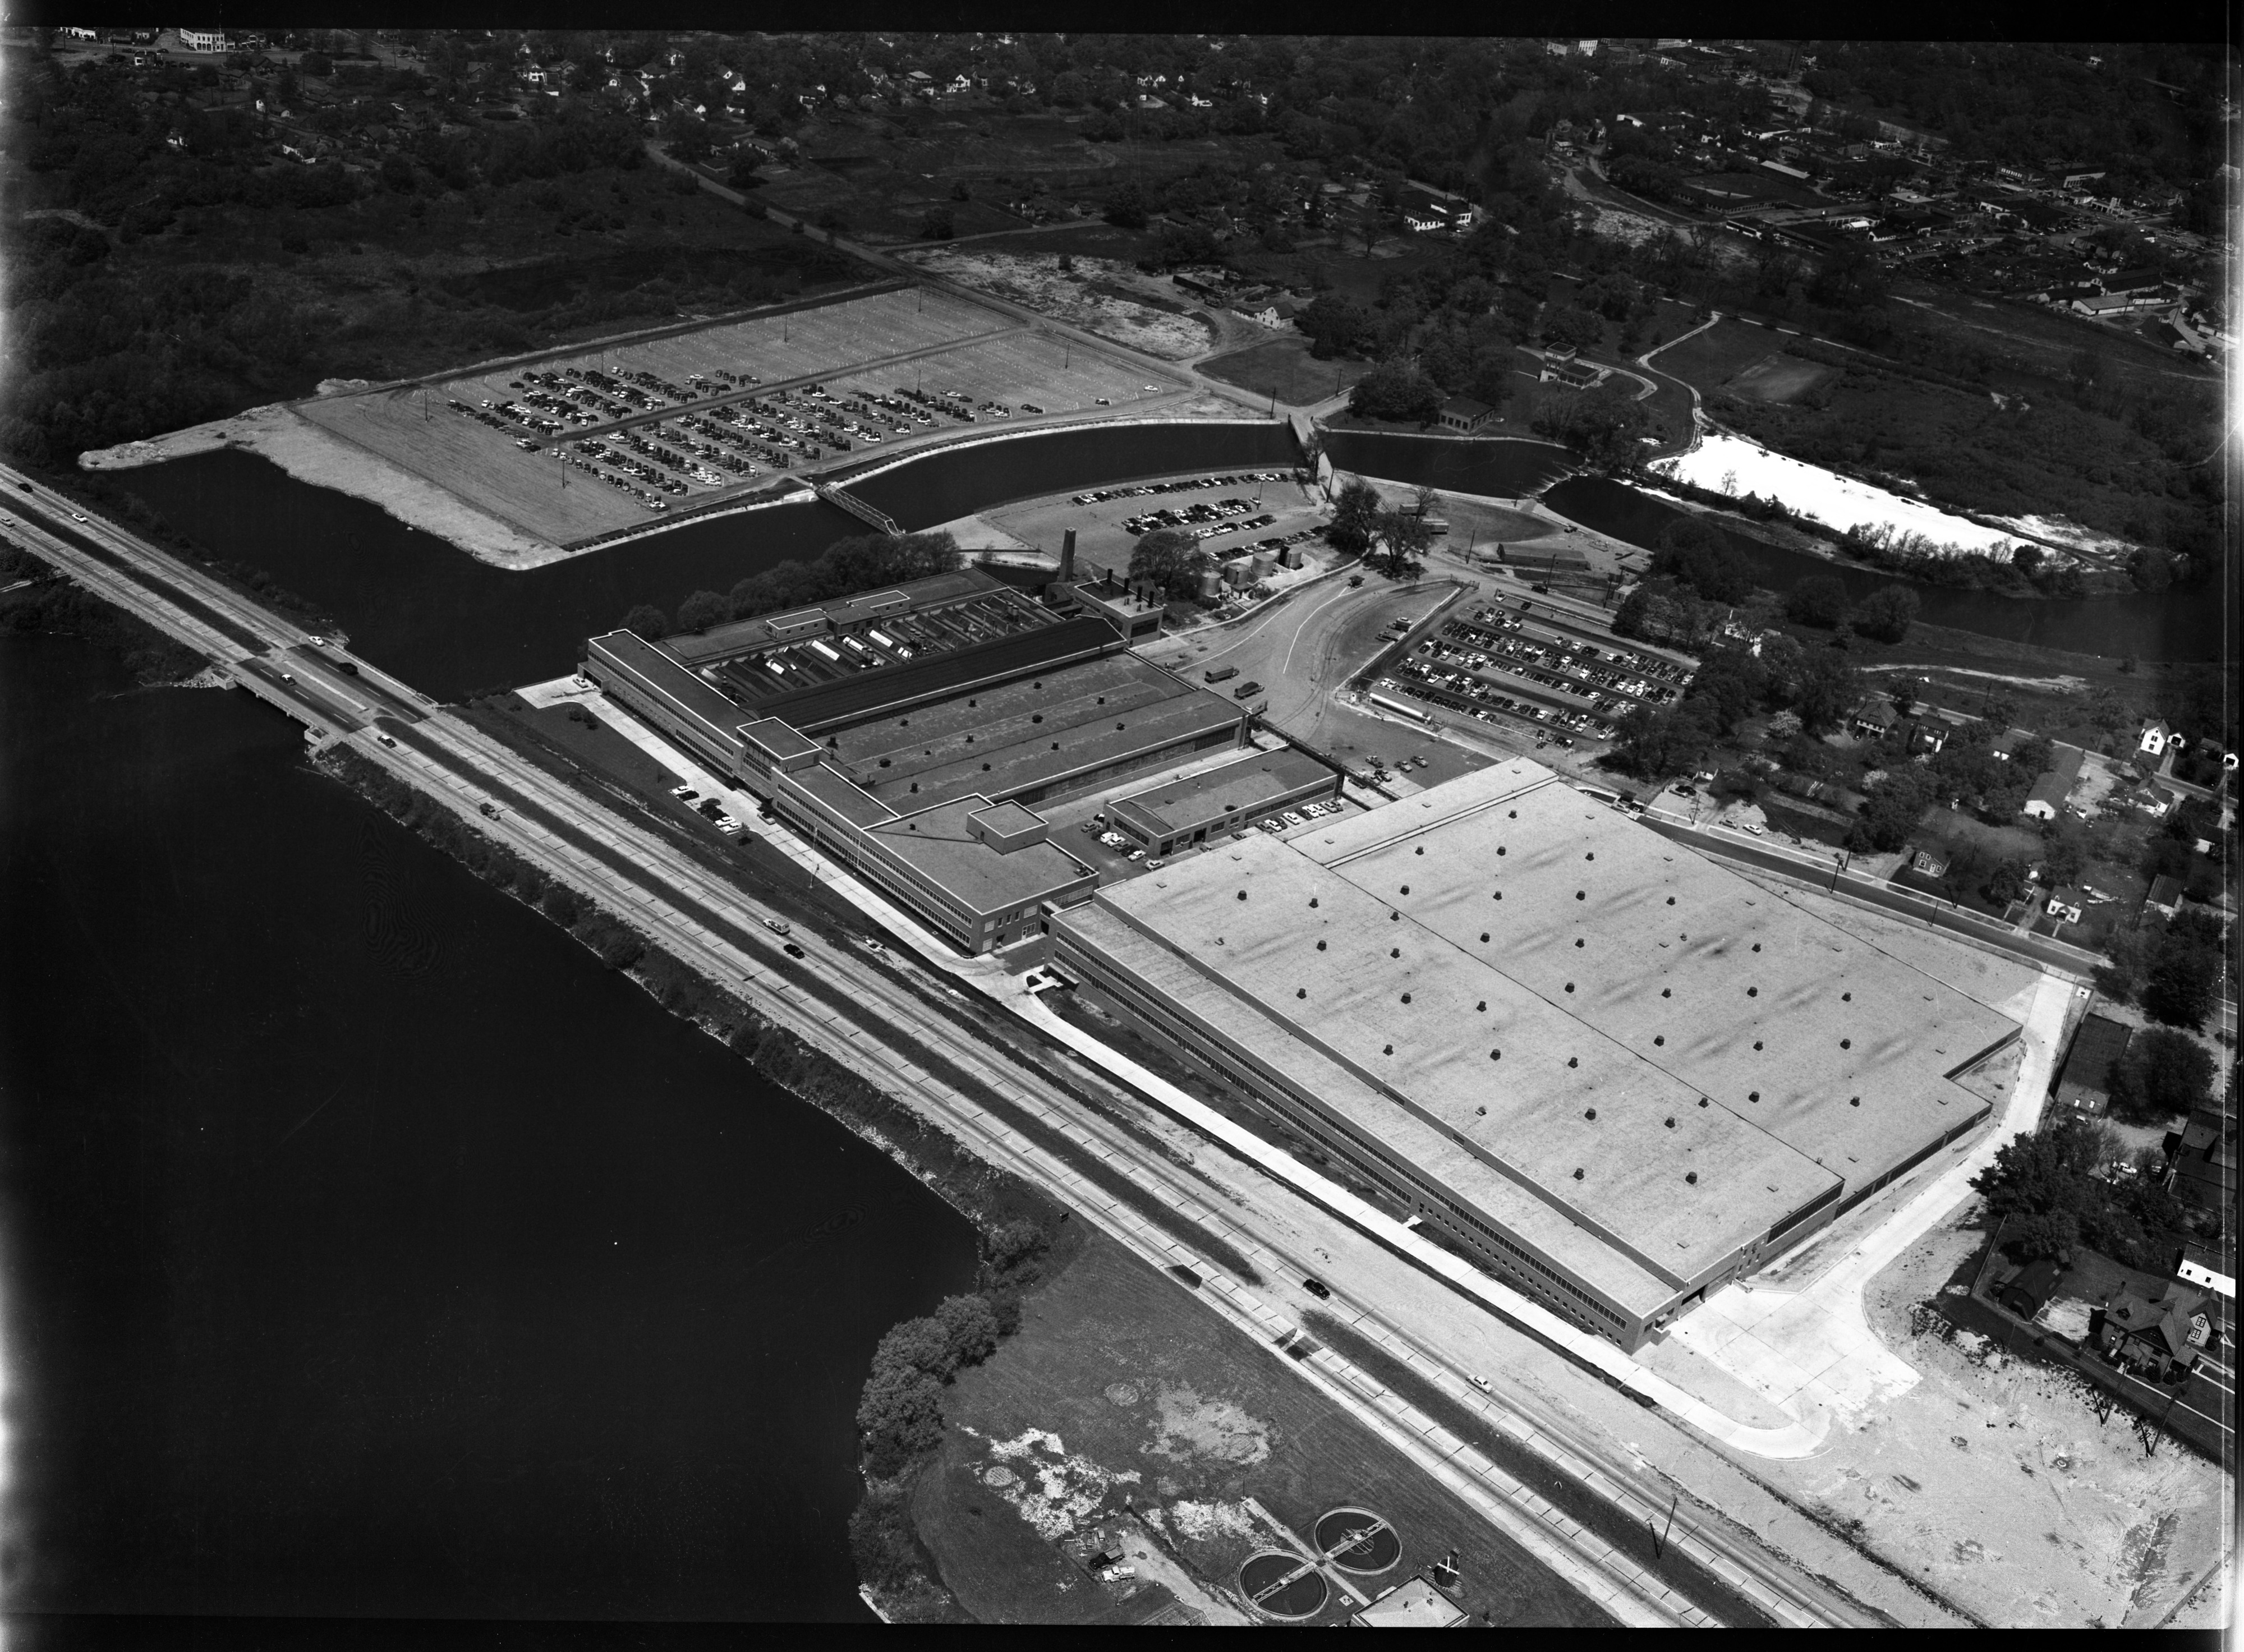 Aerial Photograph of the Ypsilanti Ford Motor Co. Plant, May 1953 image